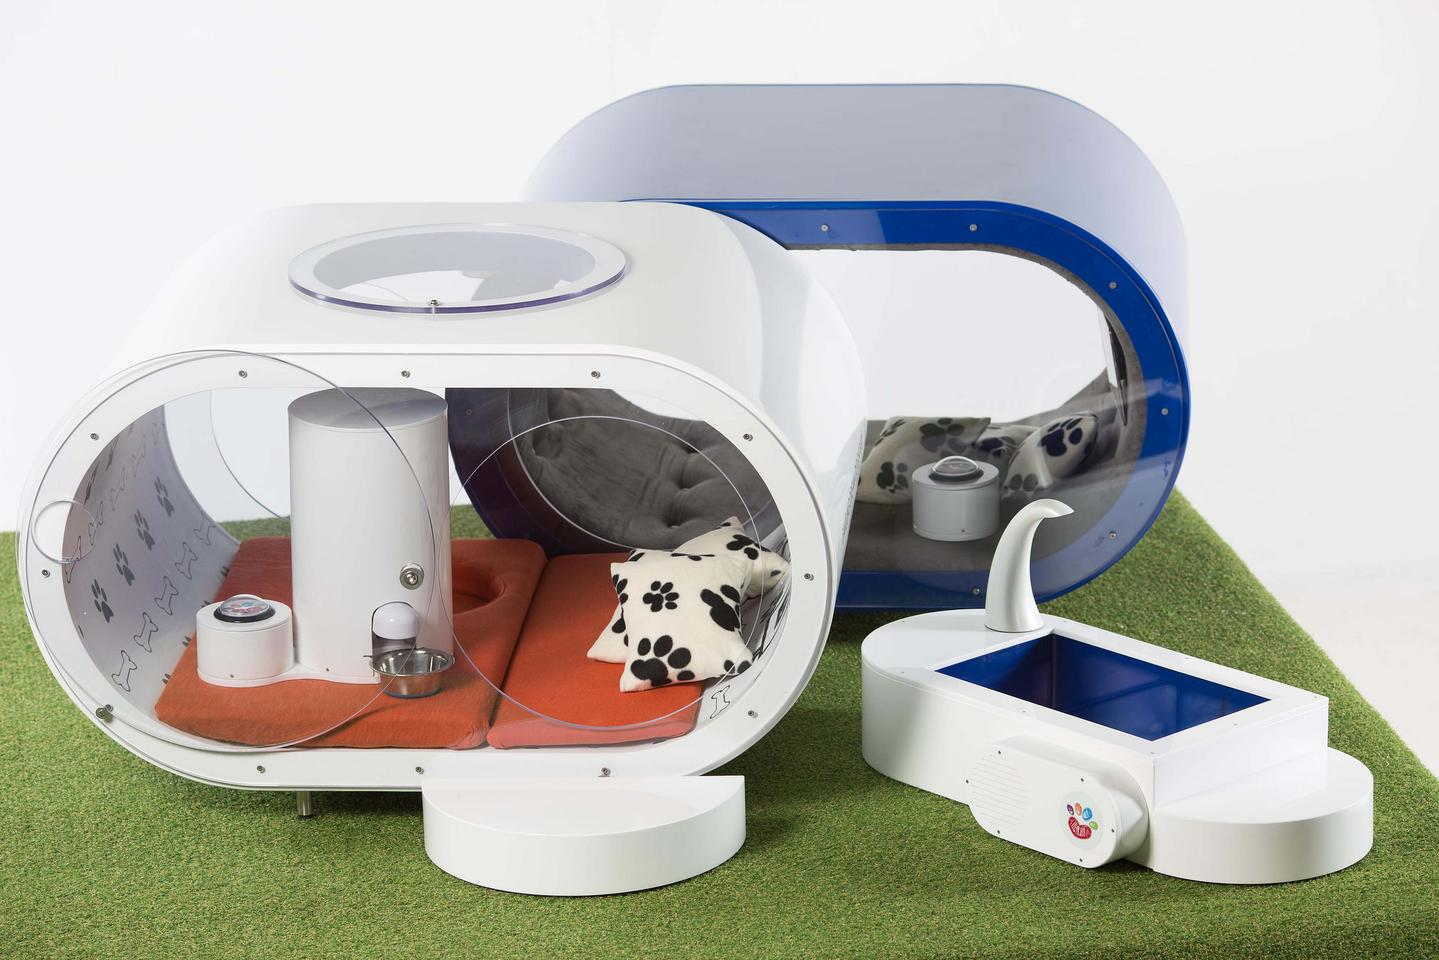 Samsung Dream Doghouse envisions luxury digs for man's best